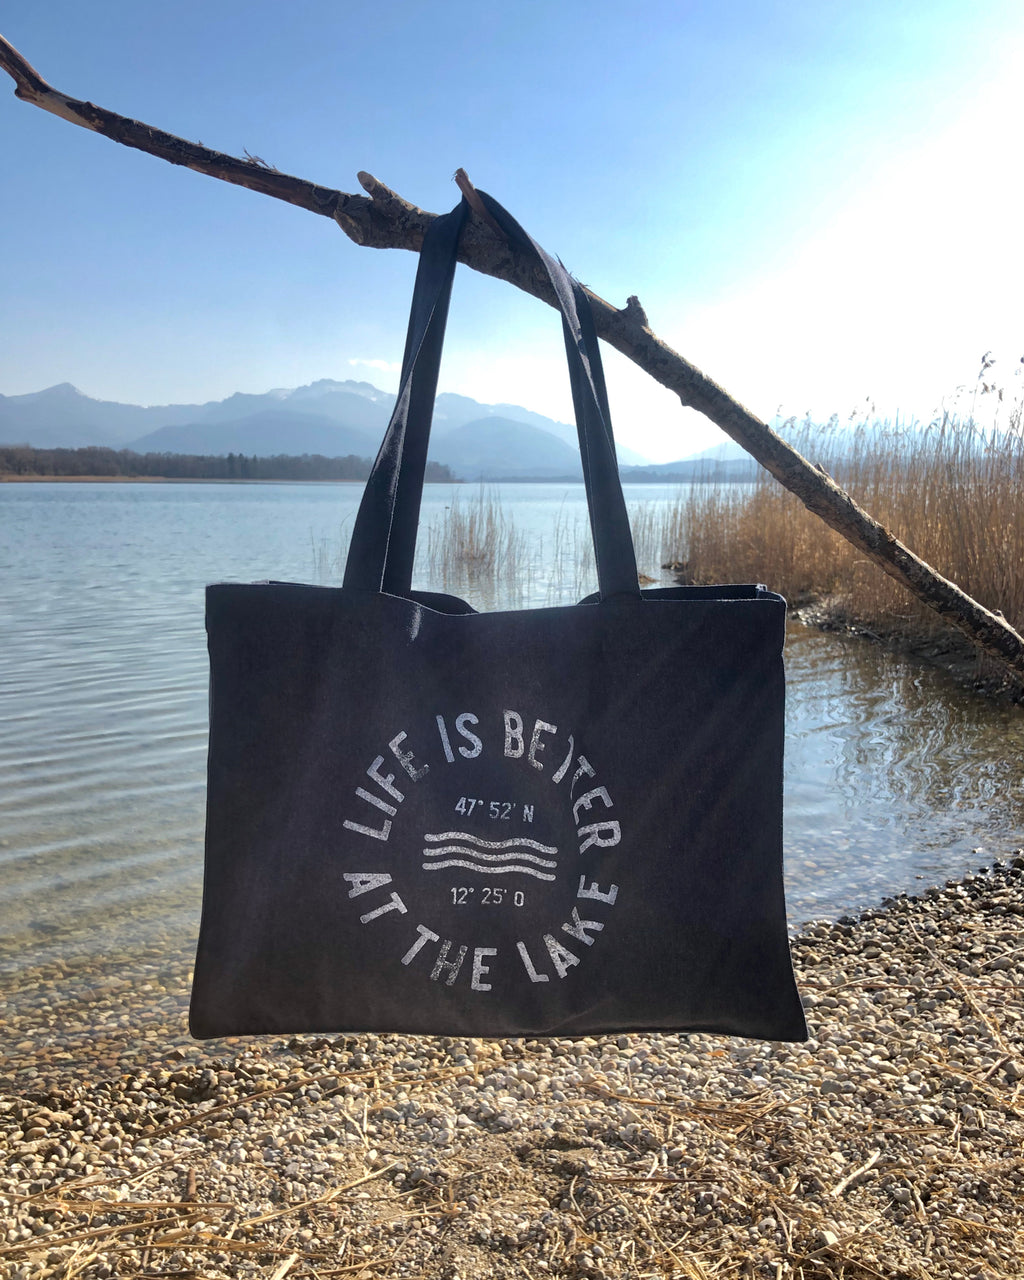 Strandtasche Life is better at the lake mit uraltem Stempeldruckverfahren bedruckt. Exklusiv bei den Three Monkeys 030